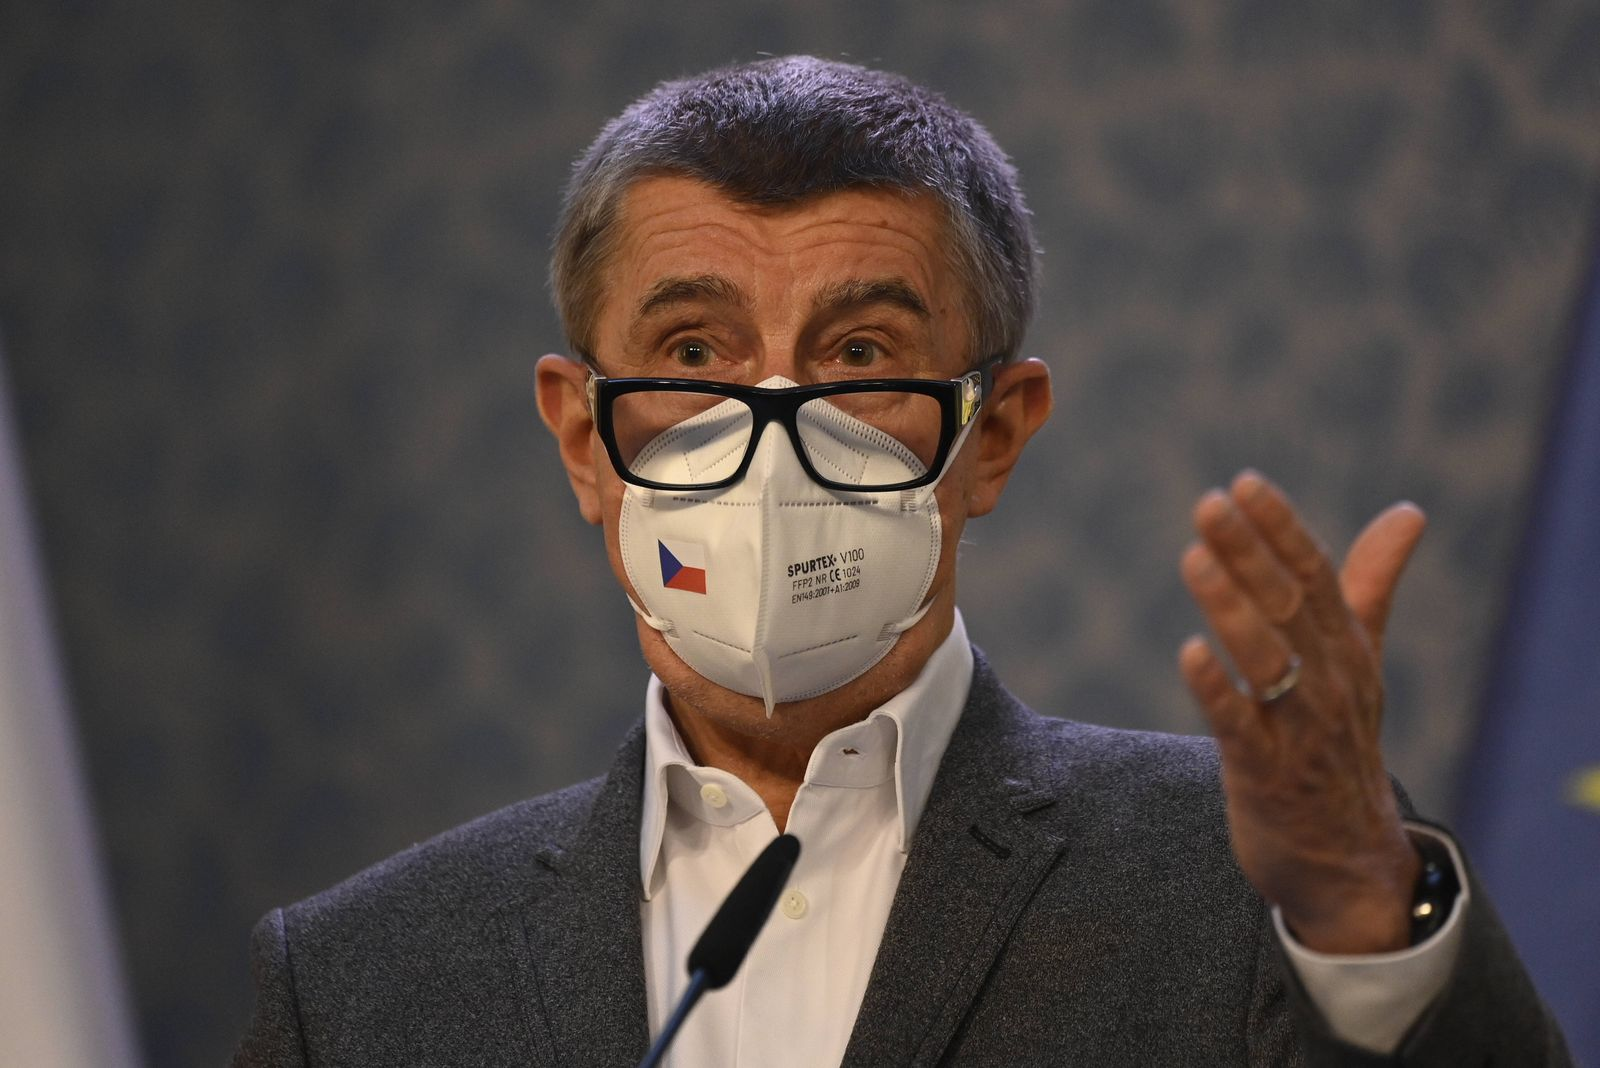 Tschechien, Andrej Babis Pressekonferenz zu Explosion des Munitionslagers 2014 in Vrbetice The Vrbetice blast was not a